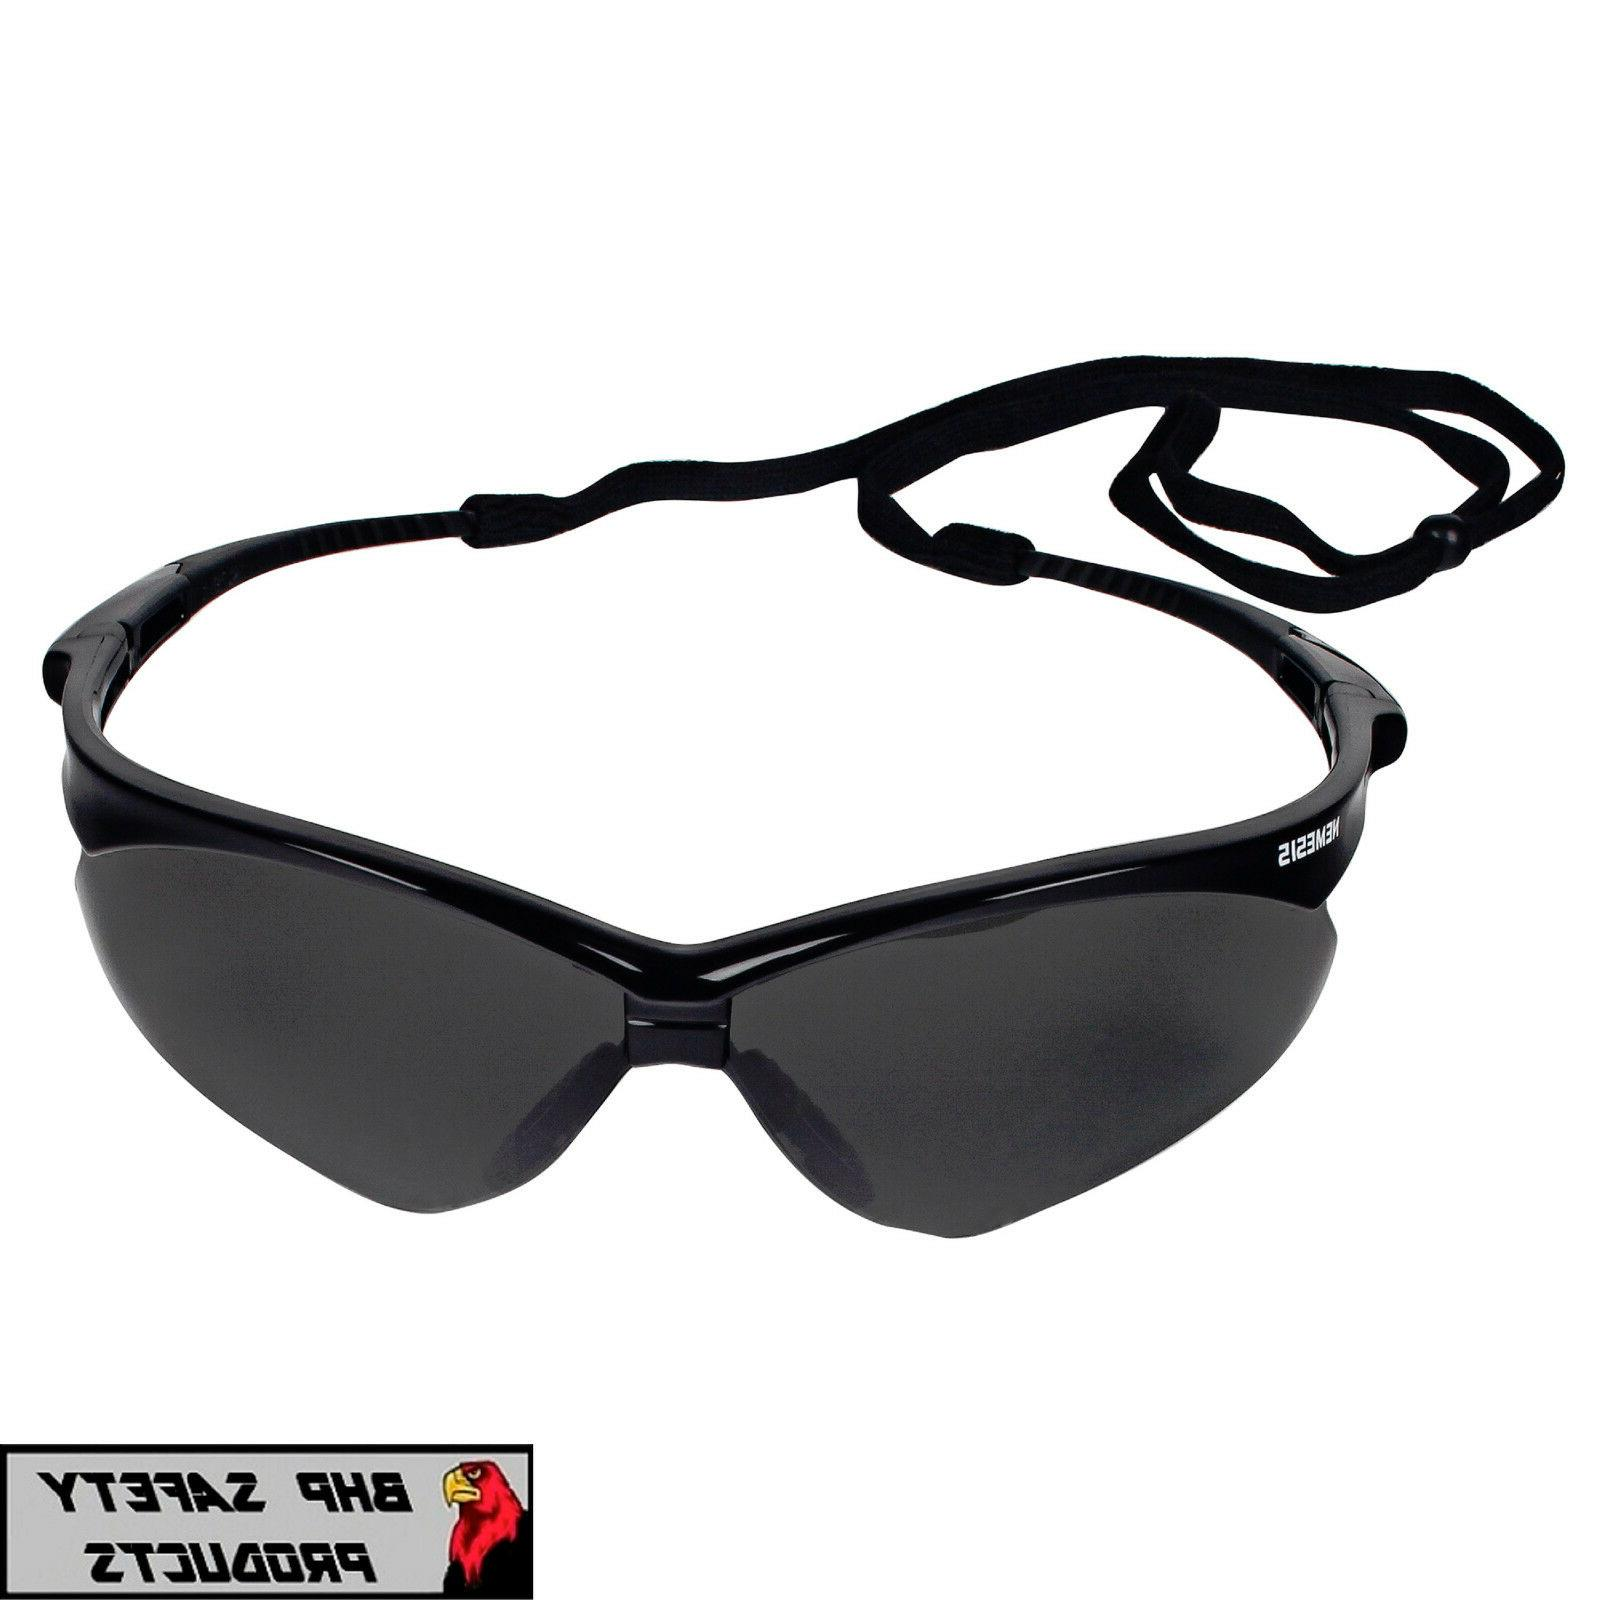 JACKSON SAFETY GLASSES ANTI-FOG LENS SUNGLASSES 22475